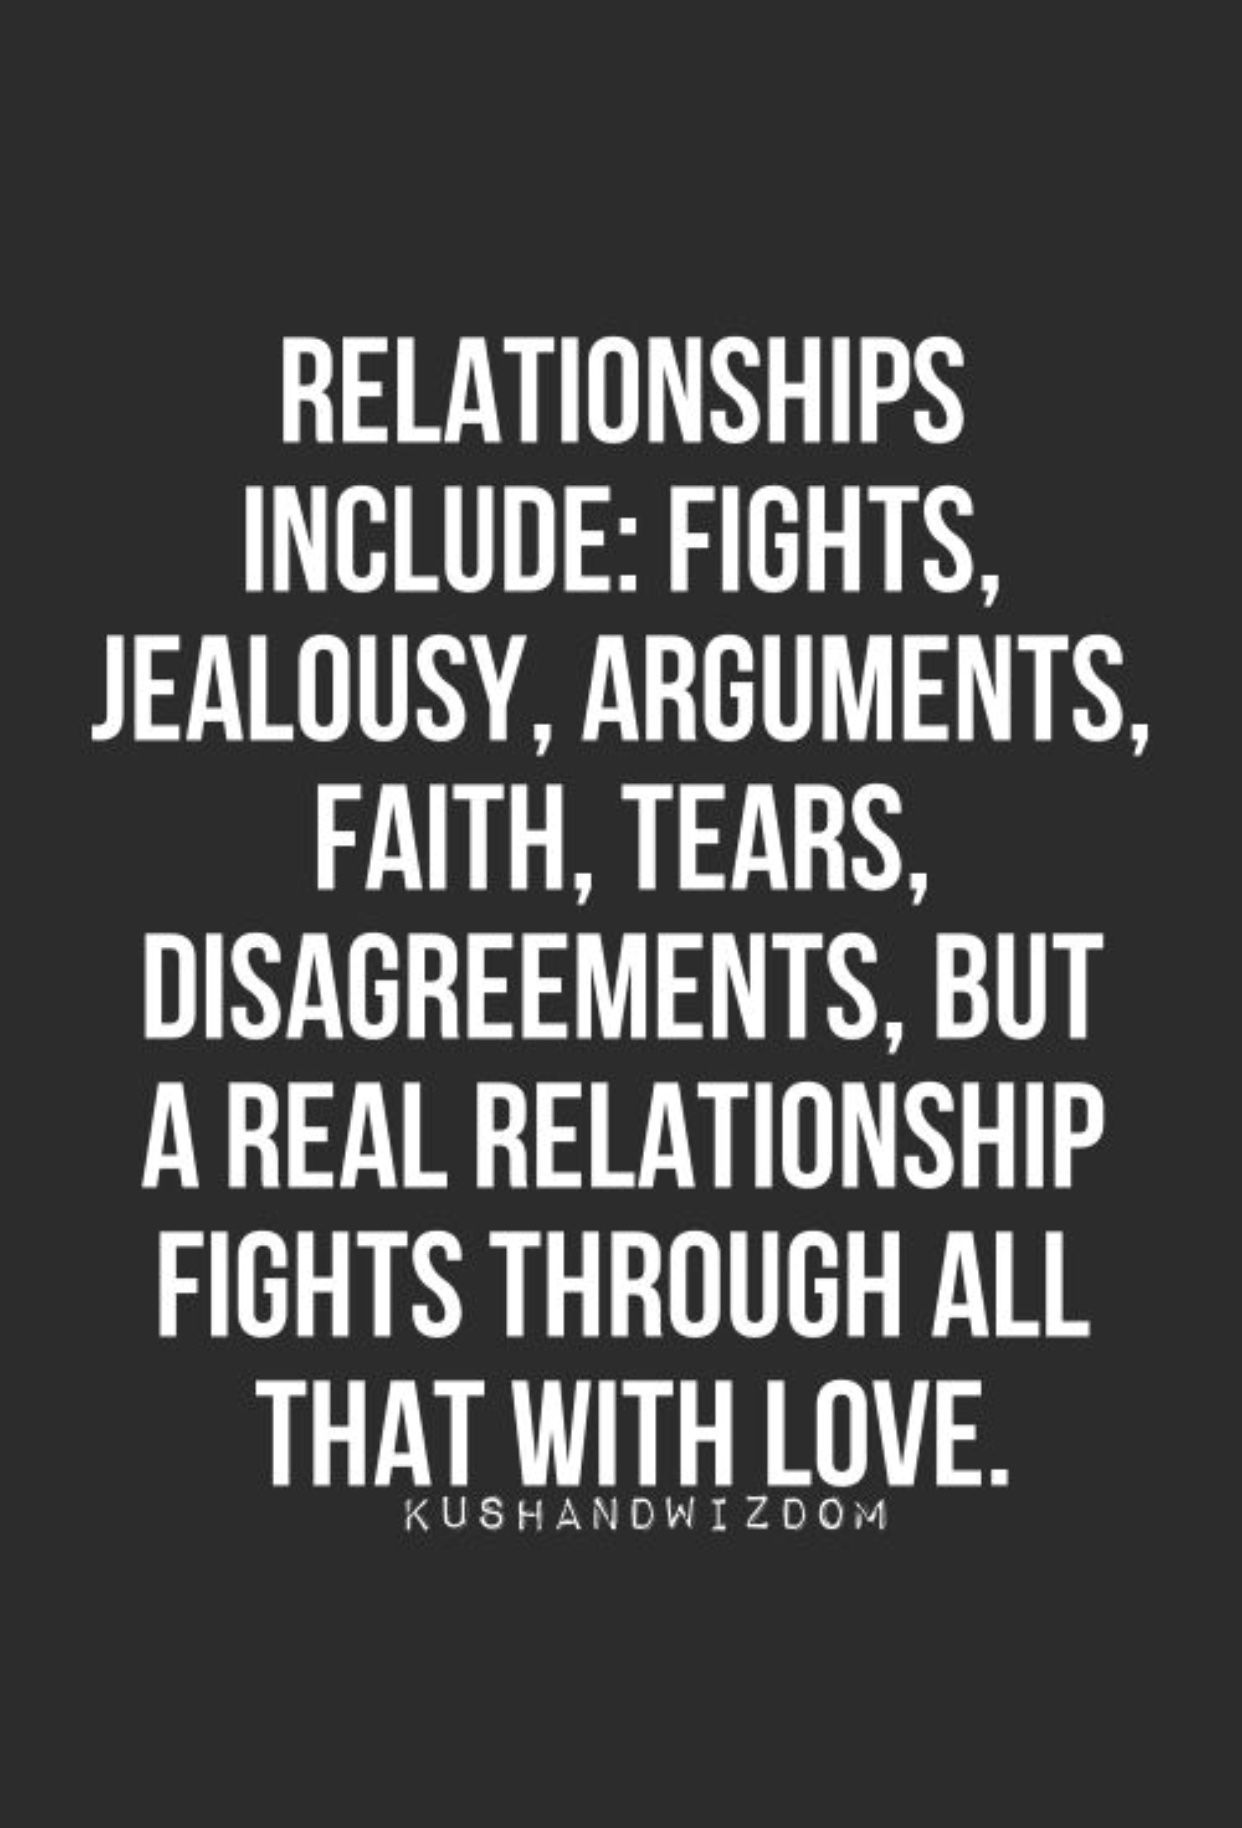 Pin By Drew On Love Quotes Pinterest Love Quotes Relationship